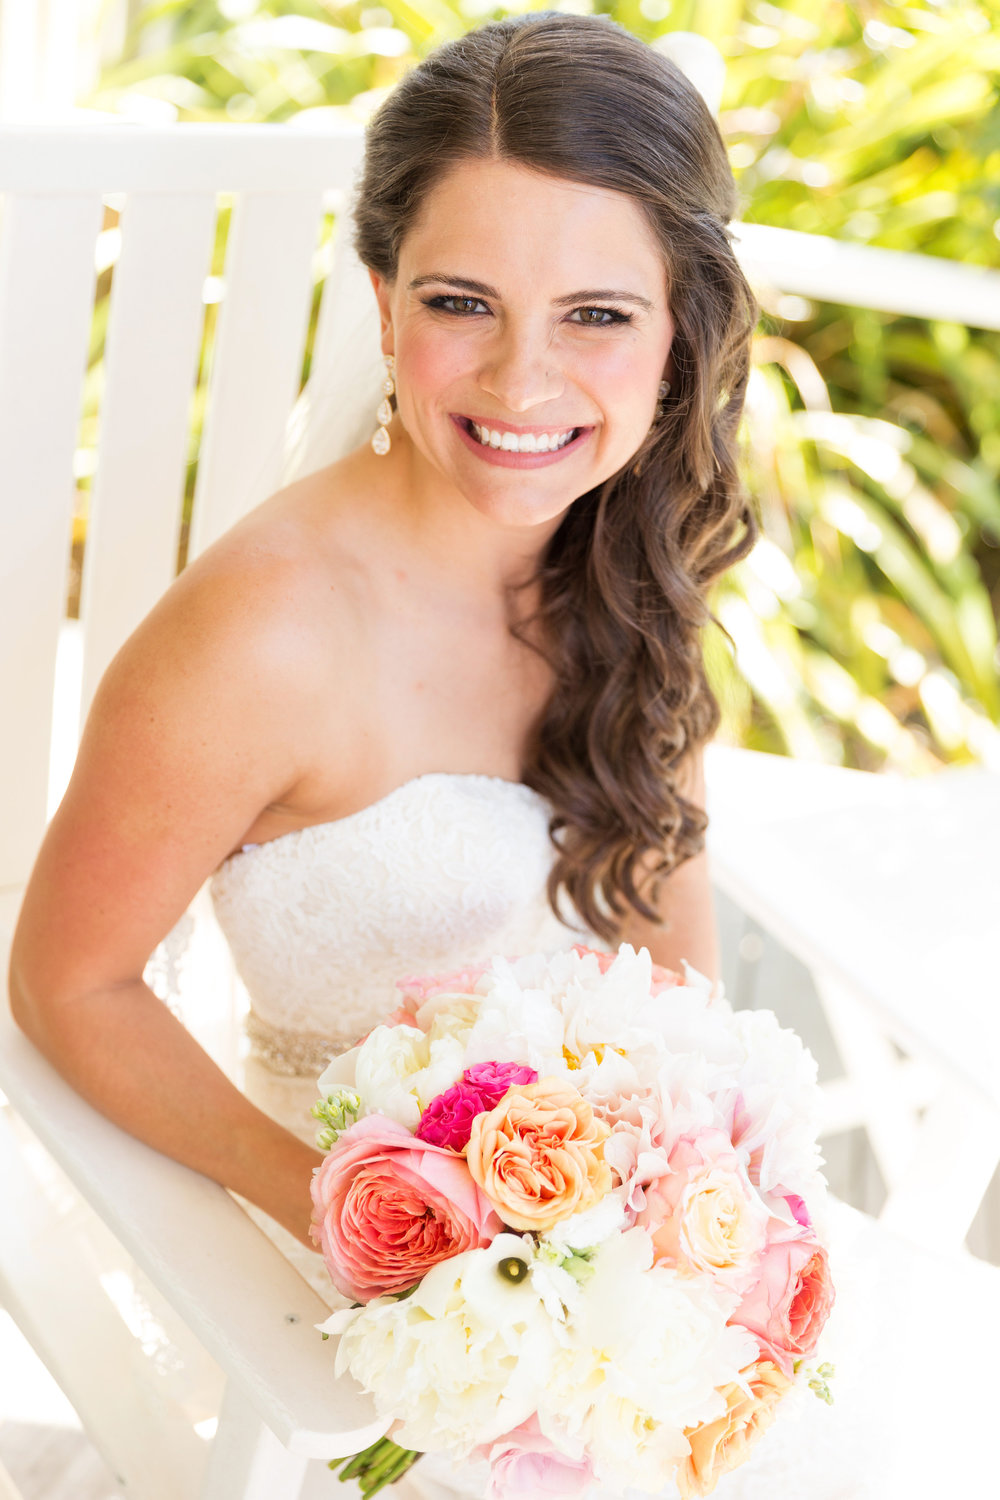 Destination-Wedding-Carneros-Inn-Makeup-Hair.jpg